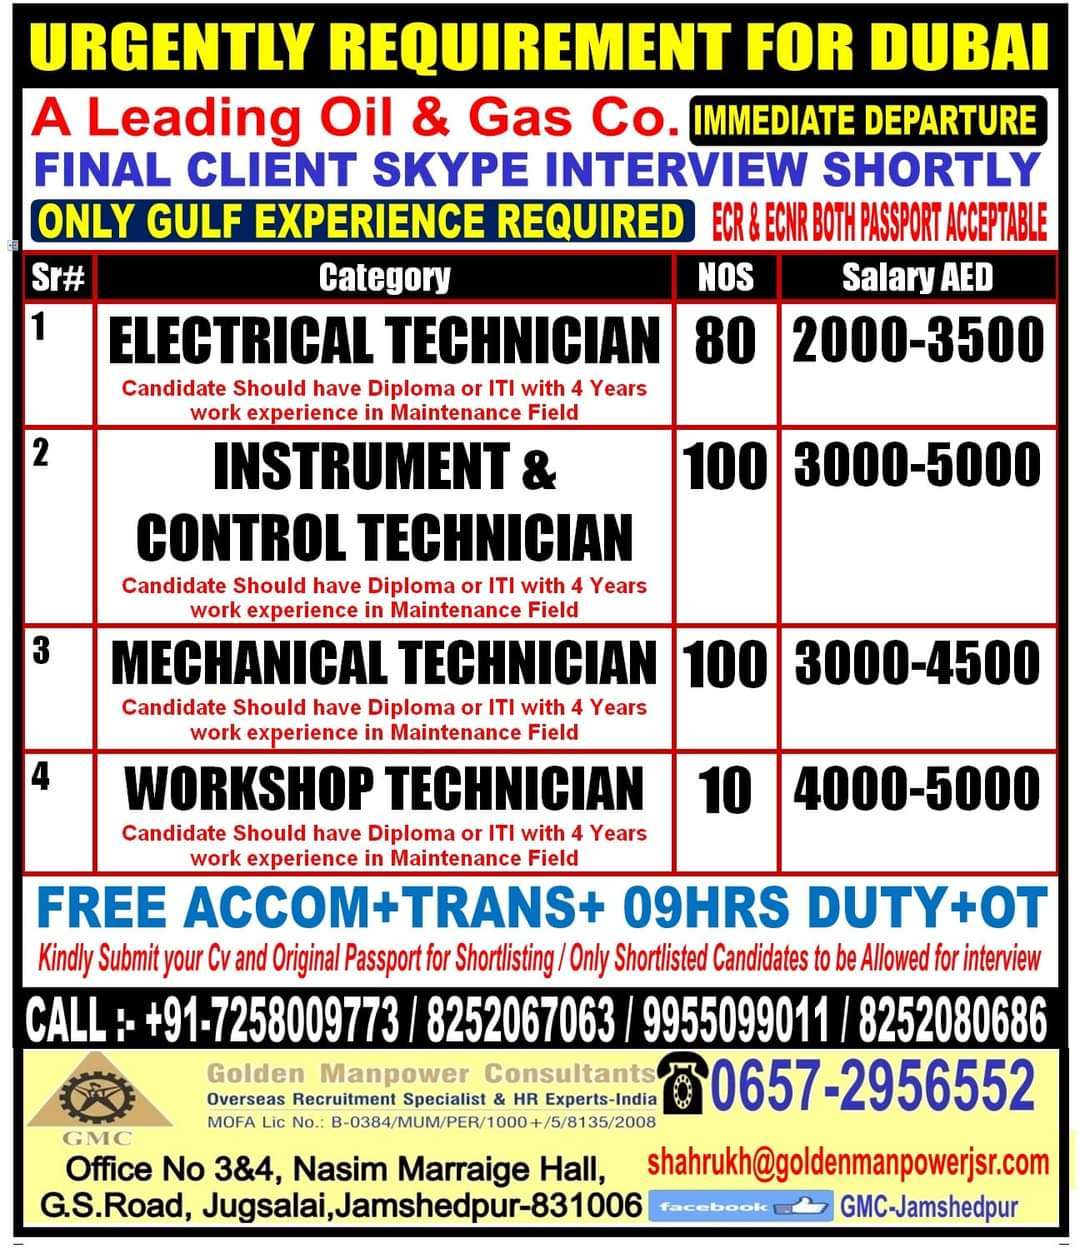 URGENTLY REQUIREMENT FOR DUBAI A LEADING OIL & GAS CO